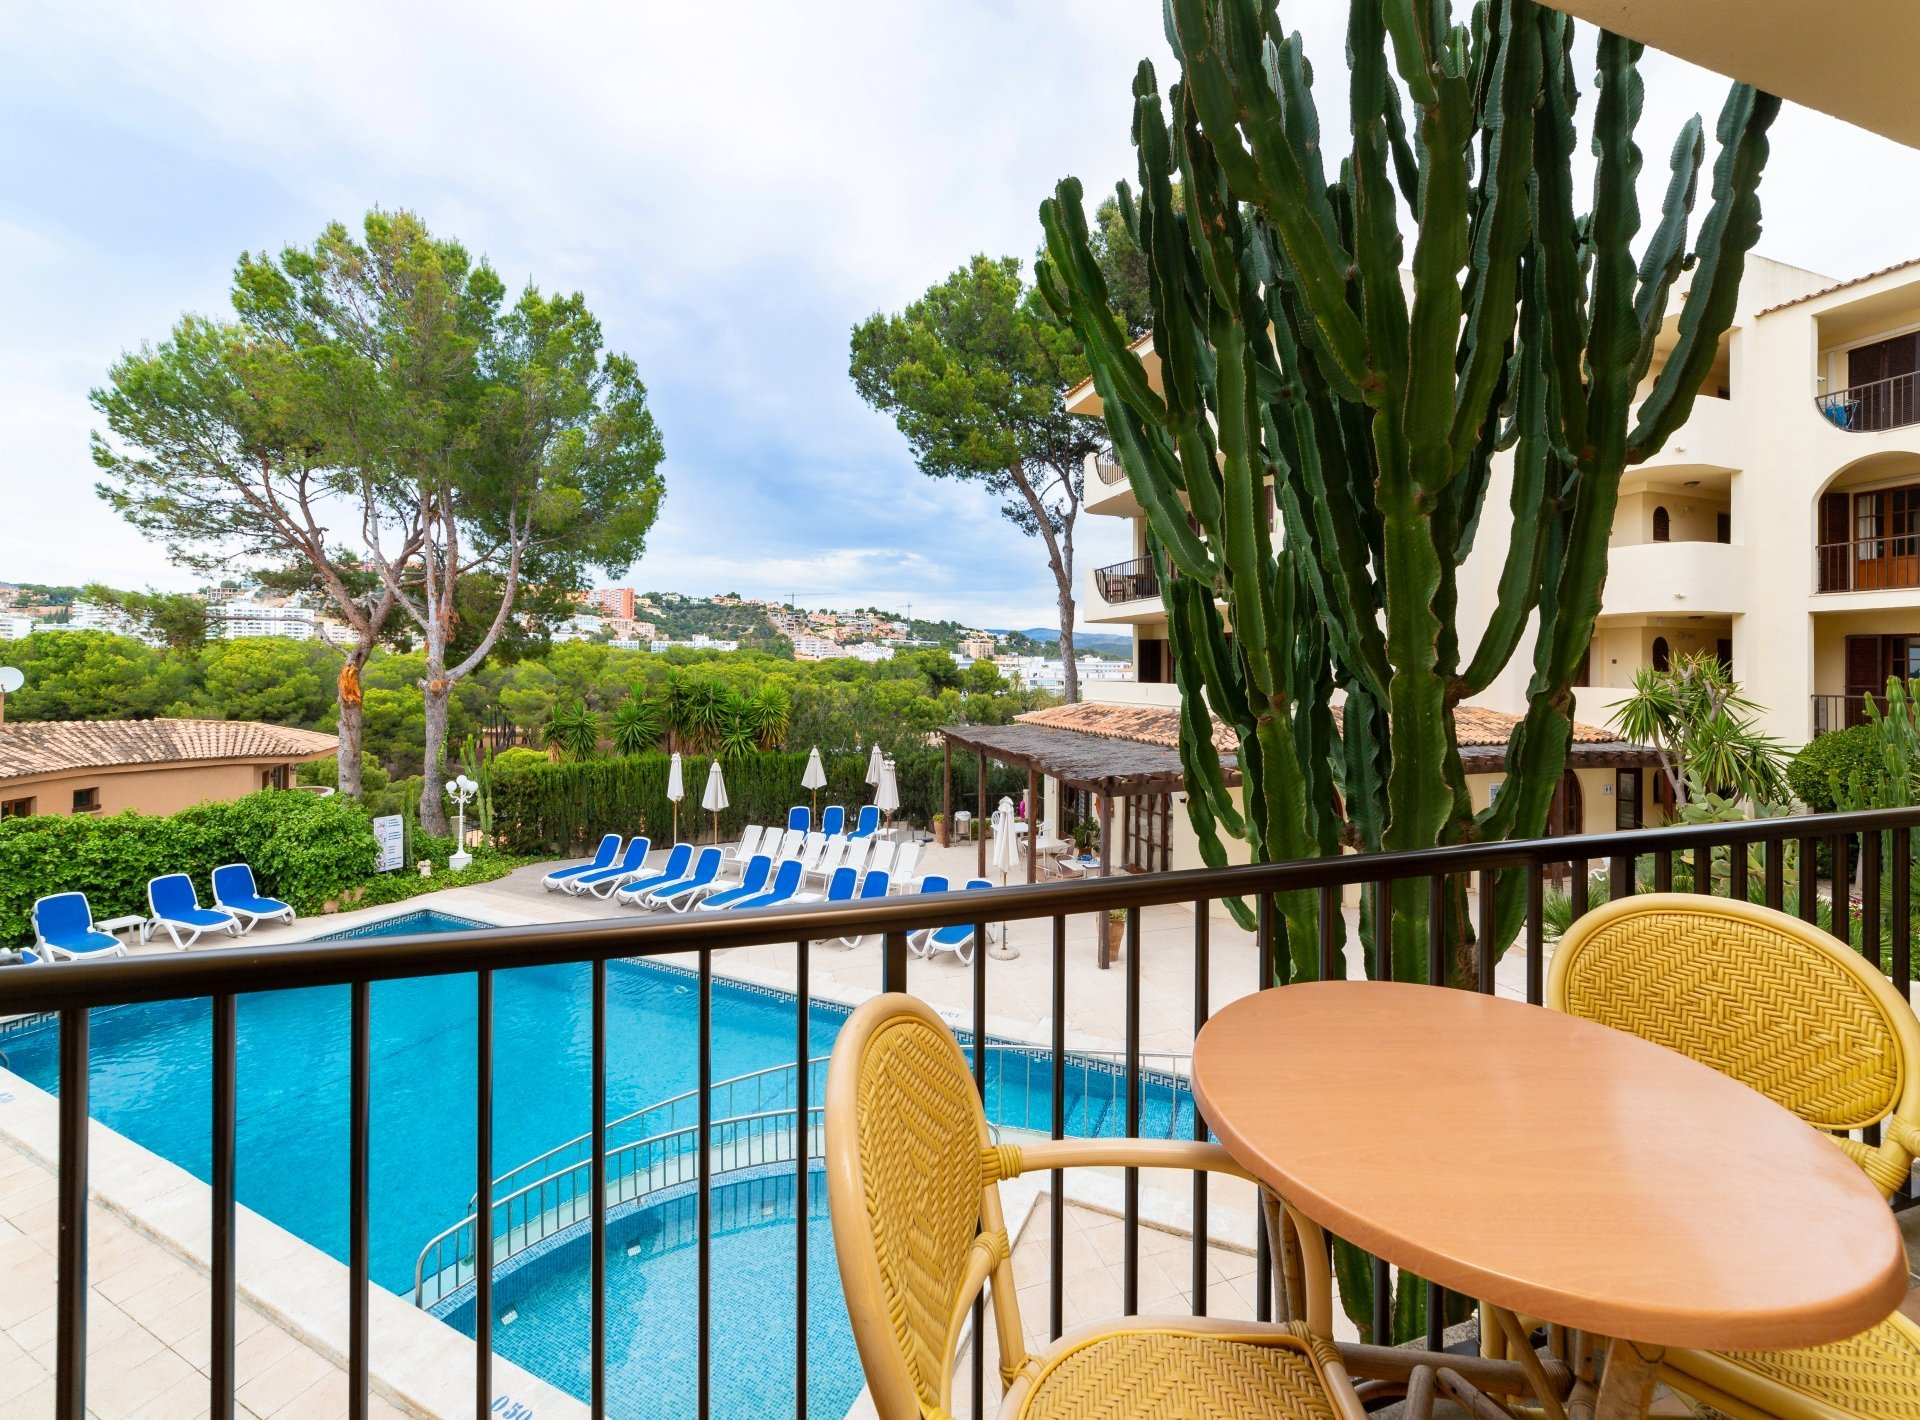 Apartment Family Friendly ¨Casa Vida¨ 2 bedroom